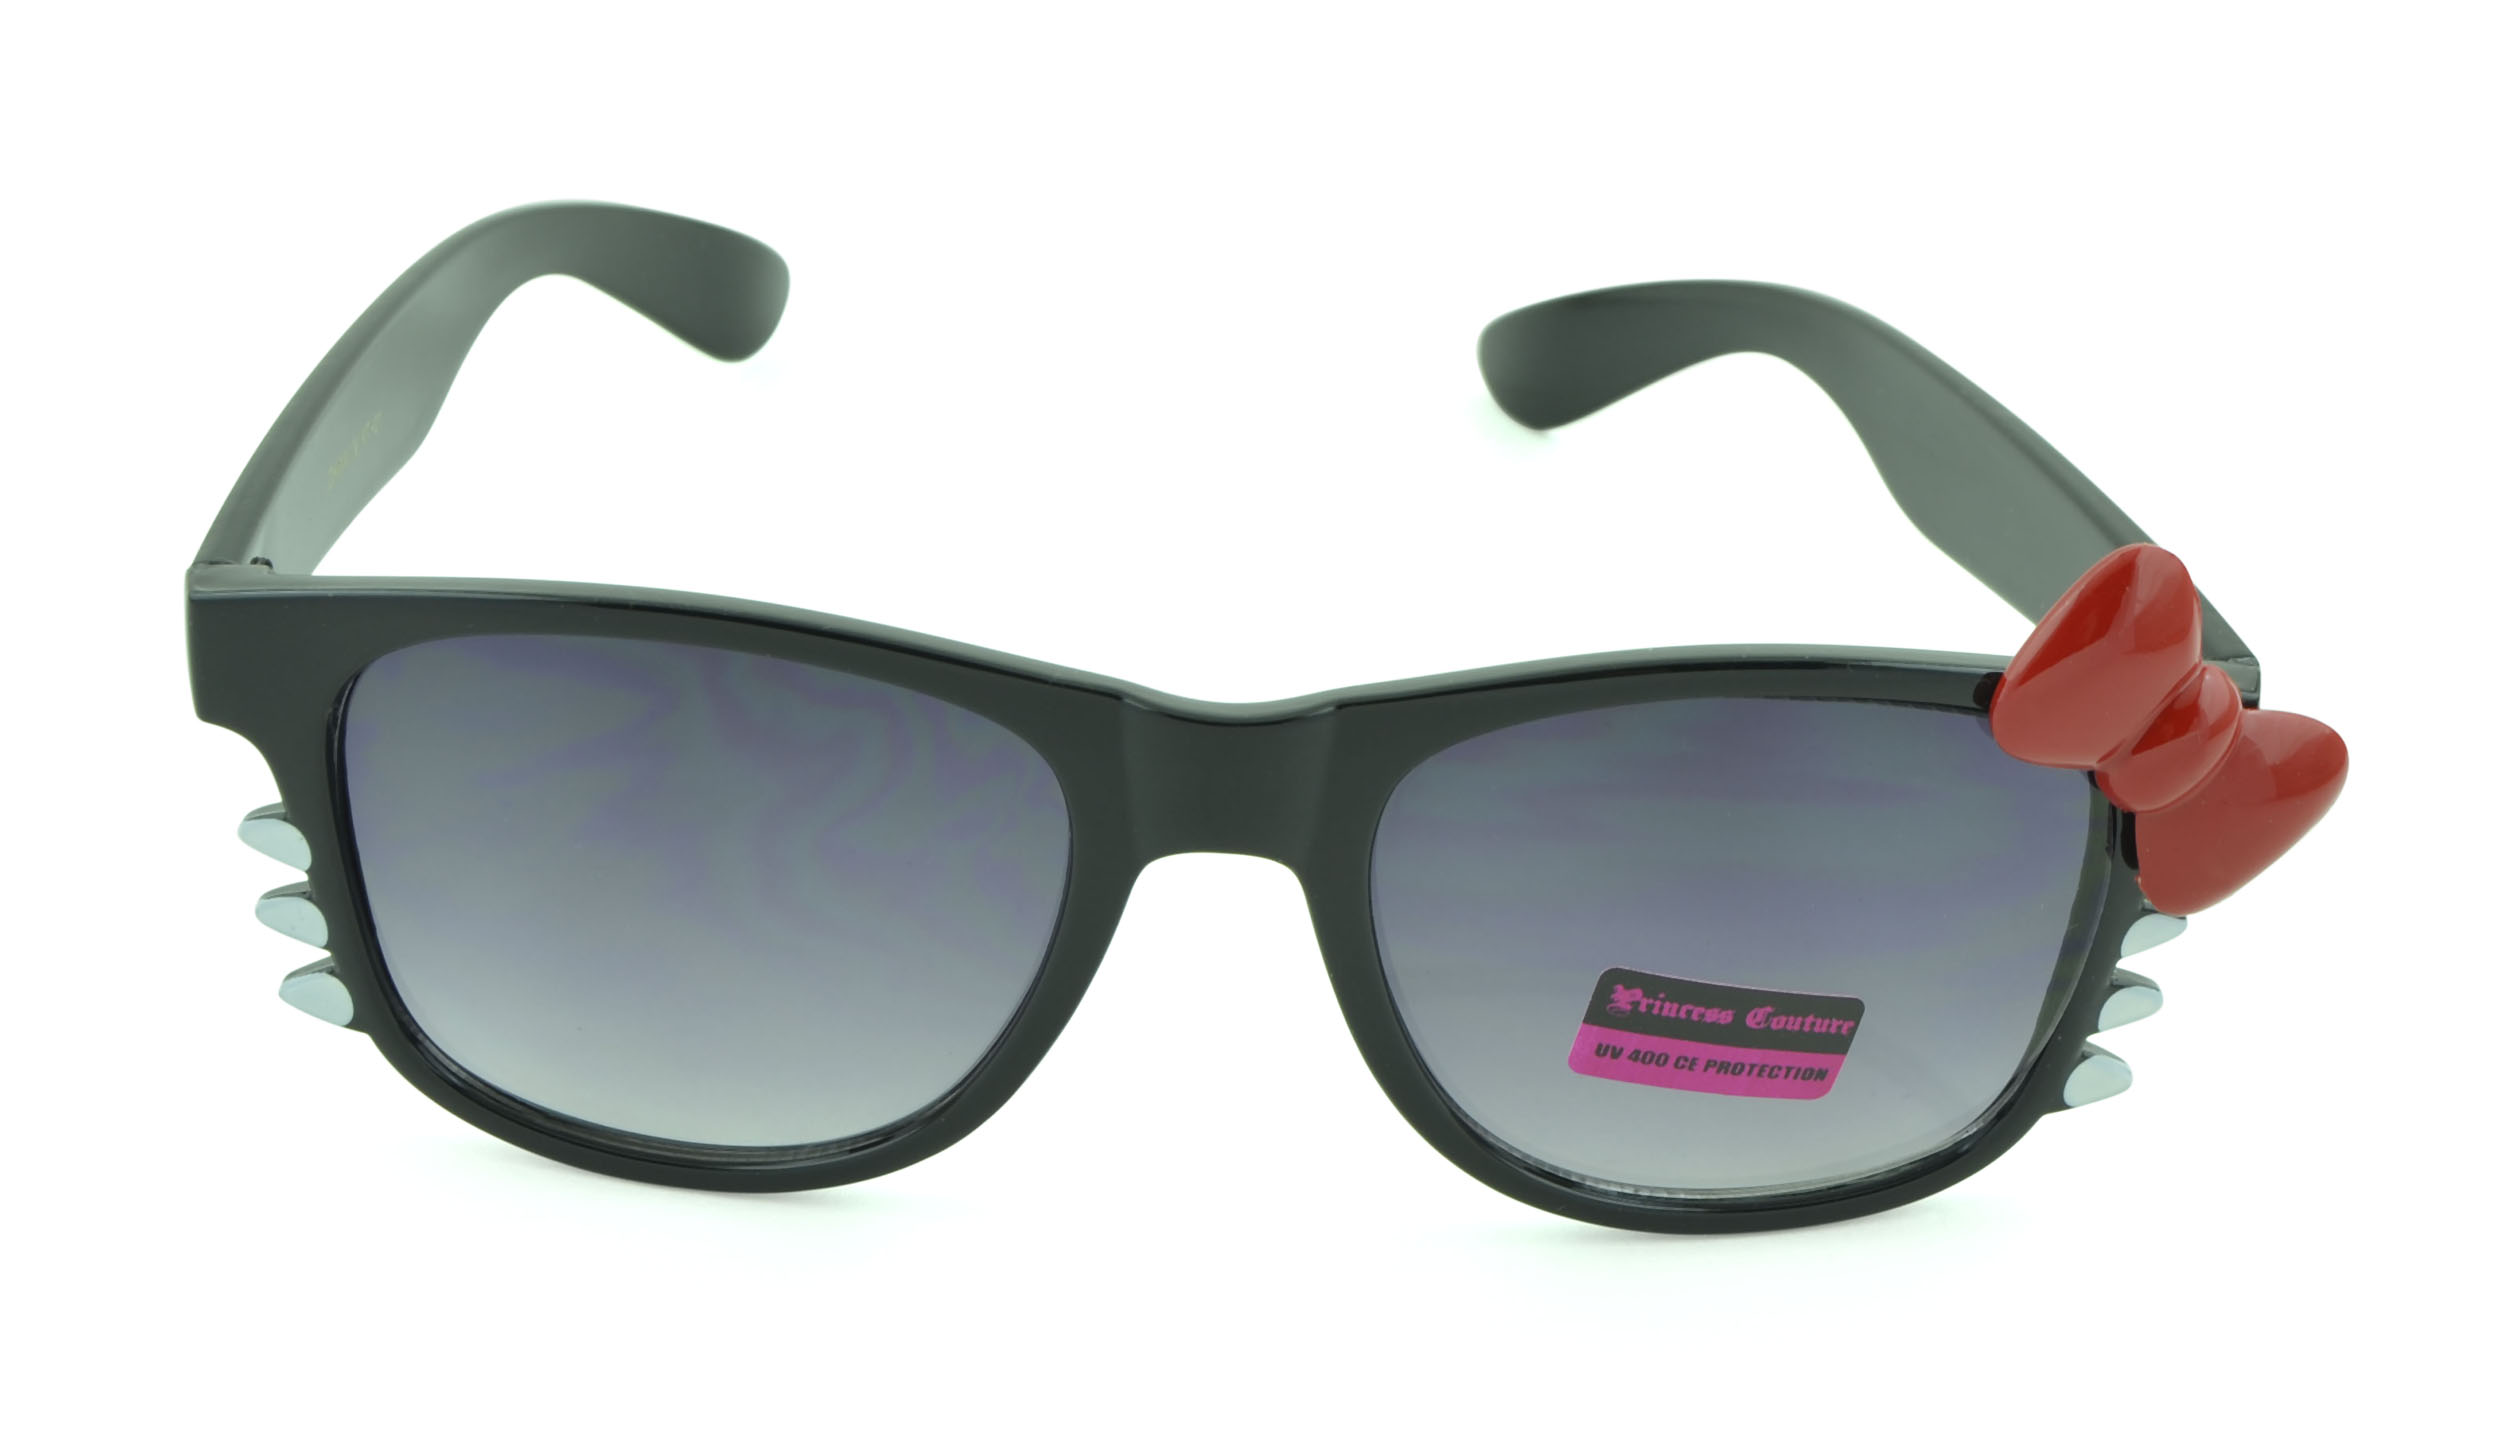 Belle Donne-Women's Kitty Cat Style Sunglasses | Whiskers and Bow Accent-Black2